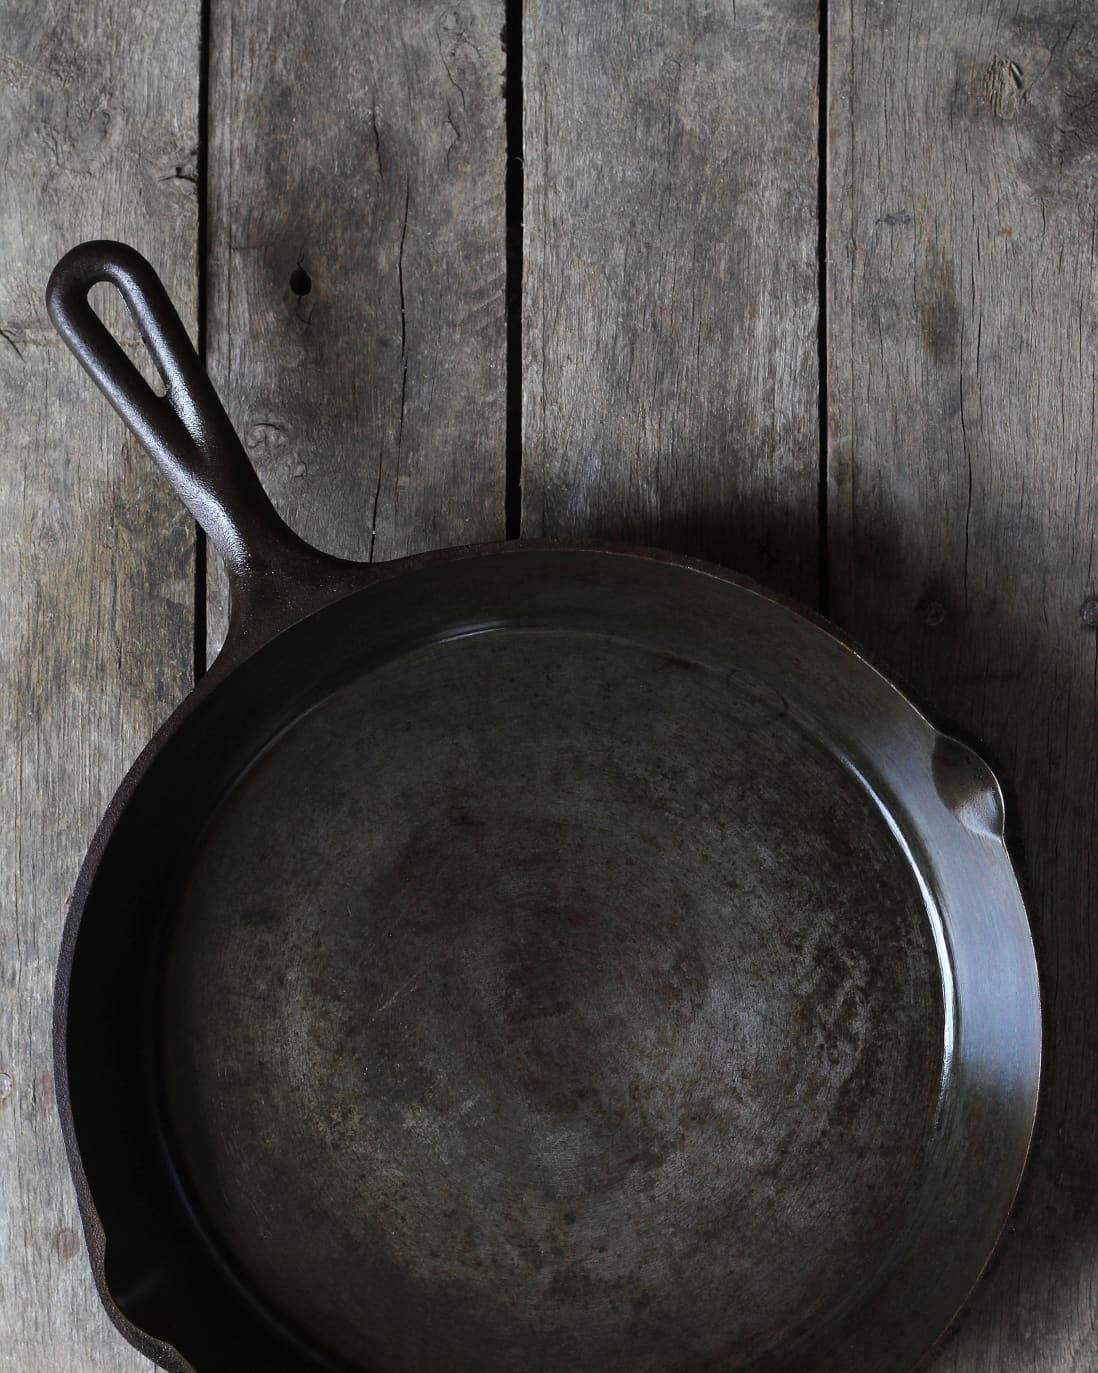 How To Clean And Season An Old Rusty Cast Iron Skillet With Salt And Oil Rusty Cast Iron Skillet Cast Iron Skillet Cast Iron Cleaning